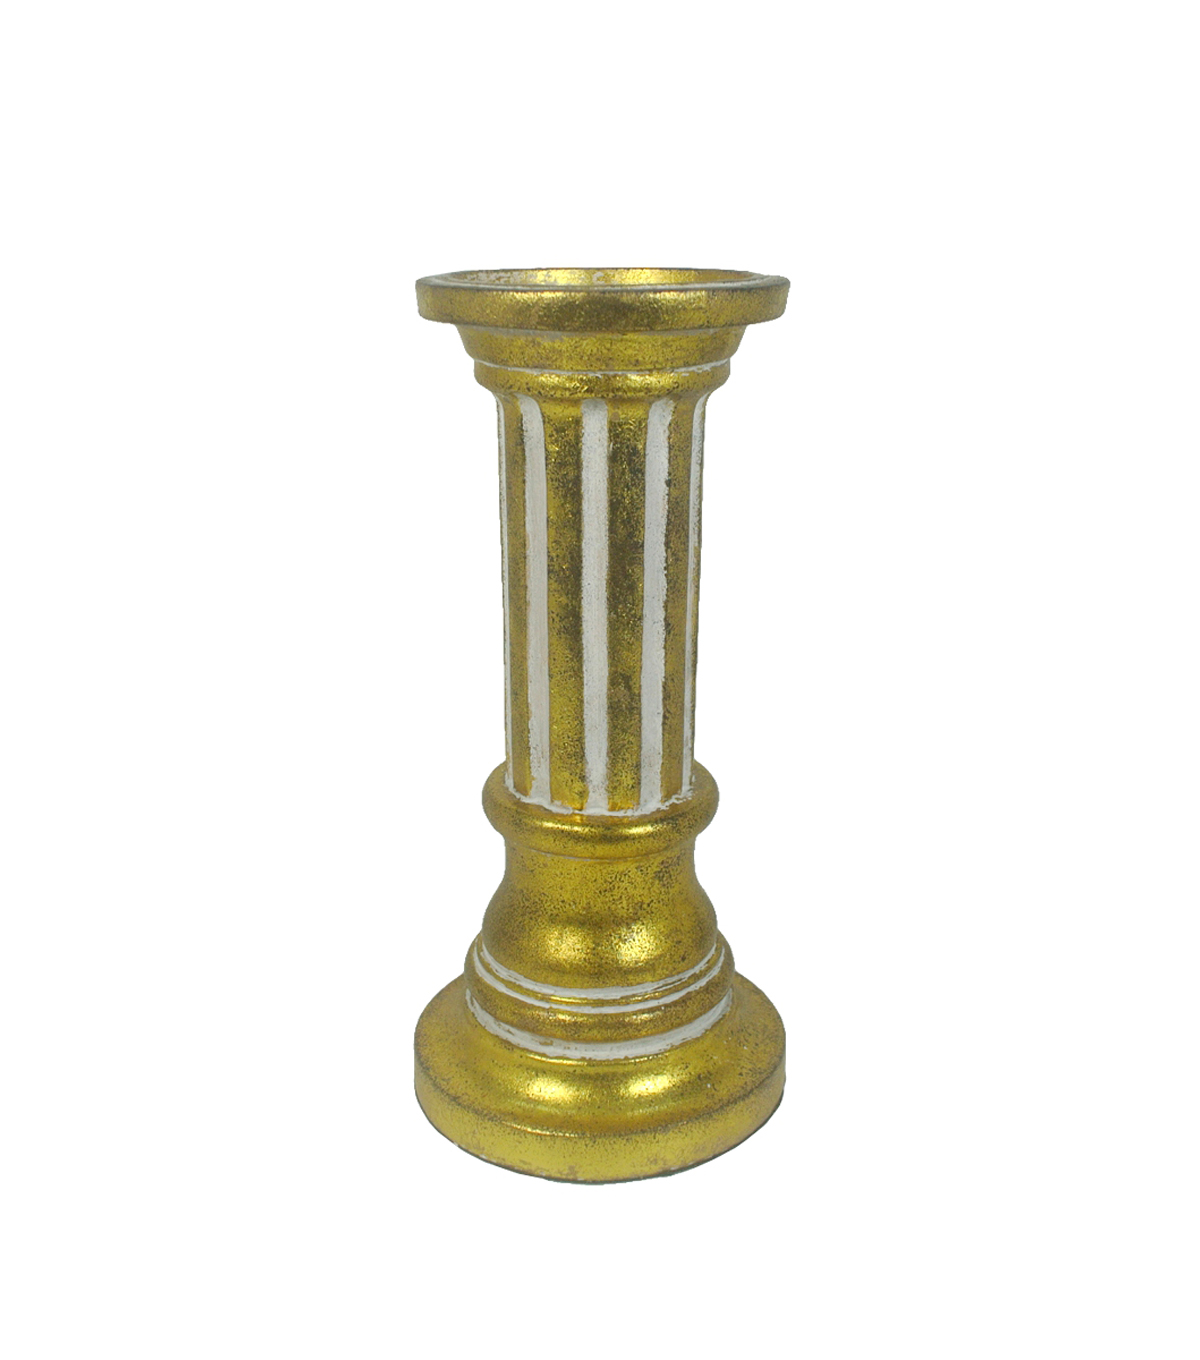 Hudson 43™ Candle & Light Collection Gold Poly Pillar Holder